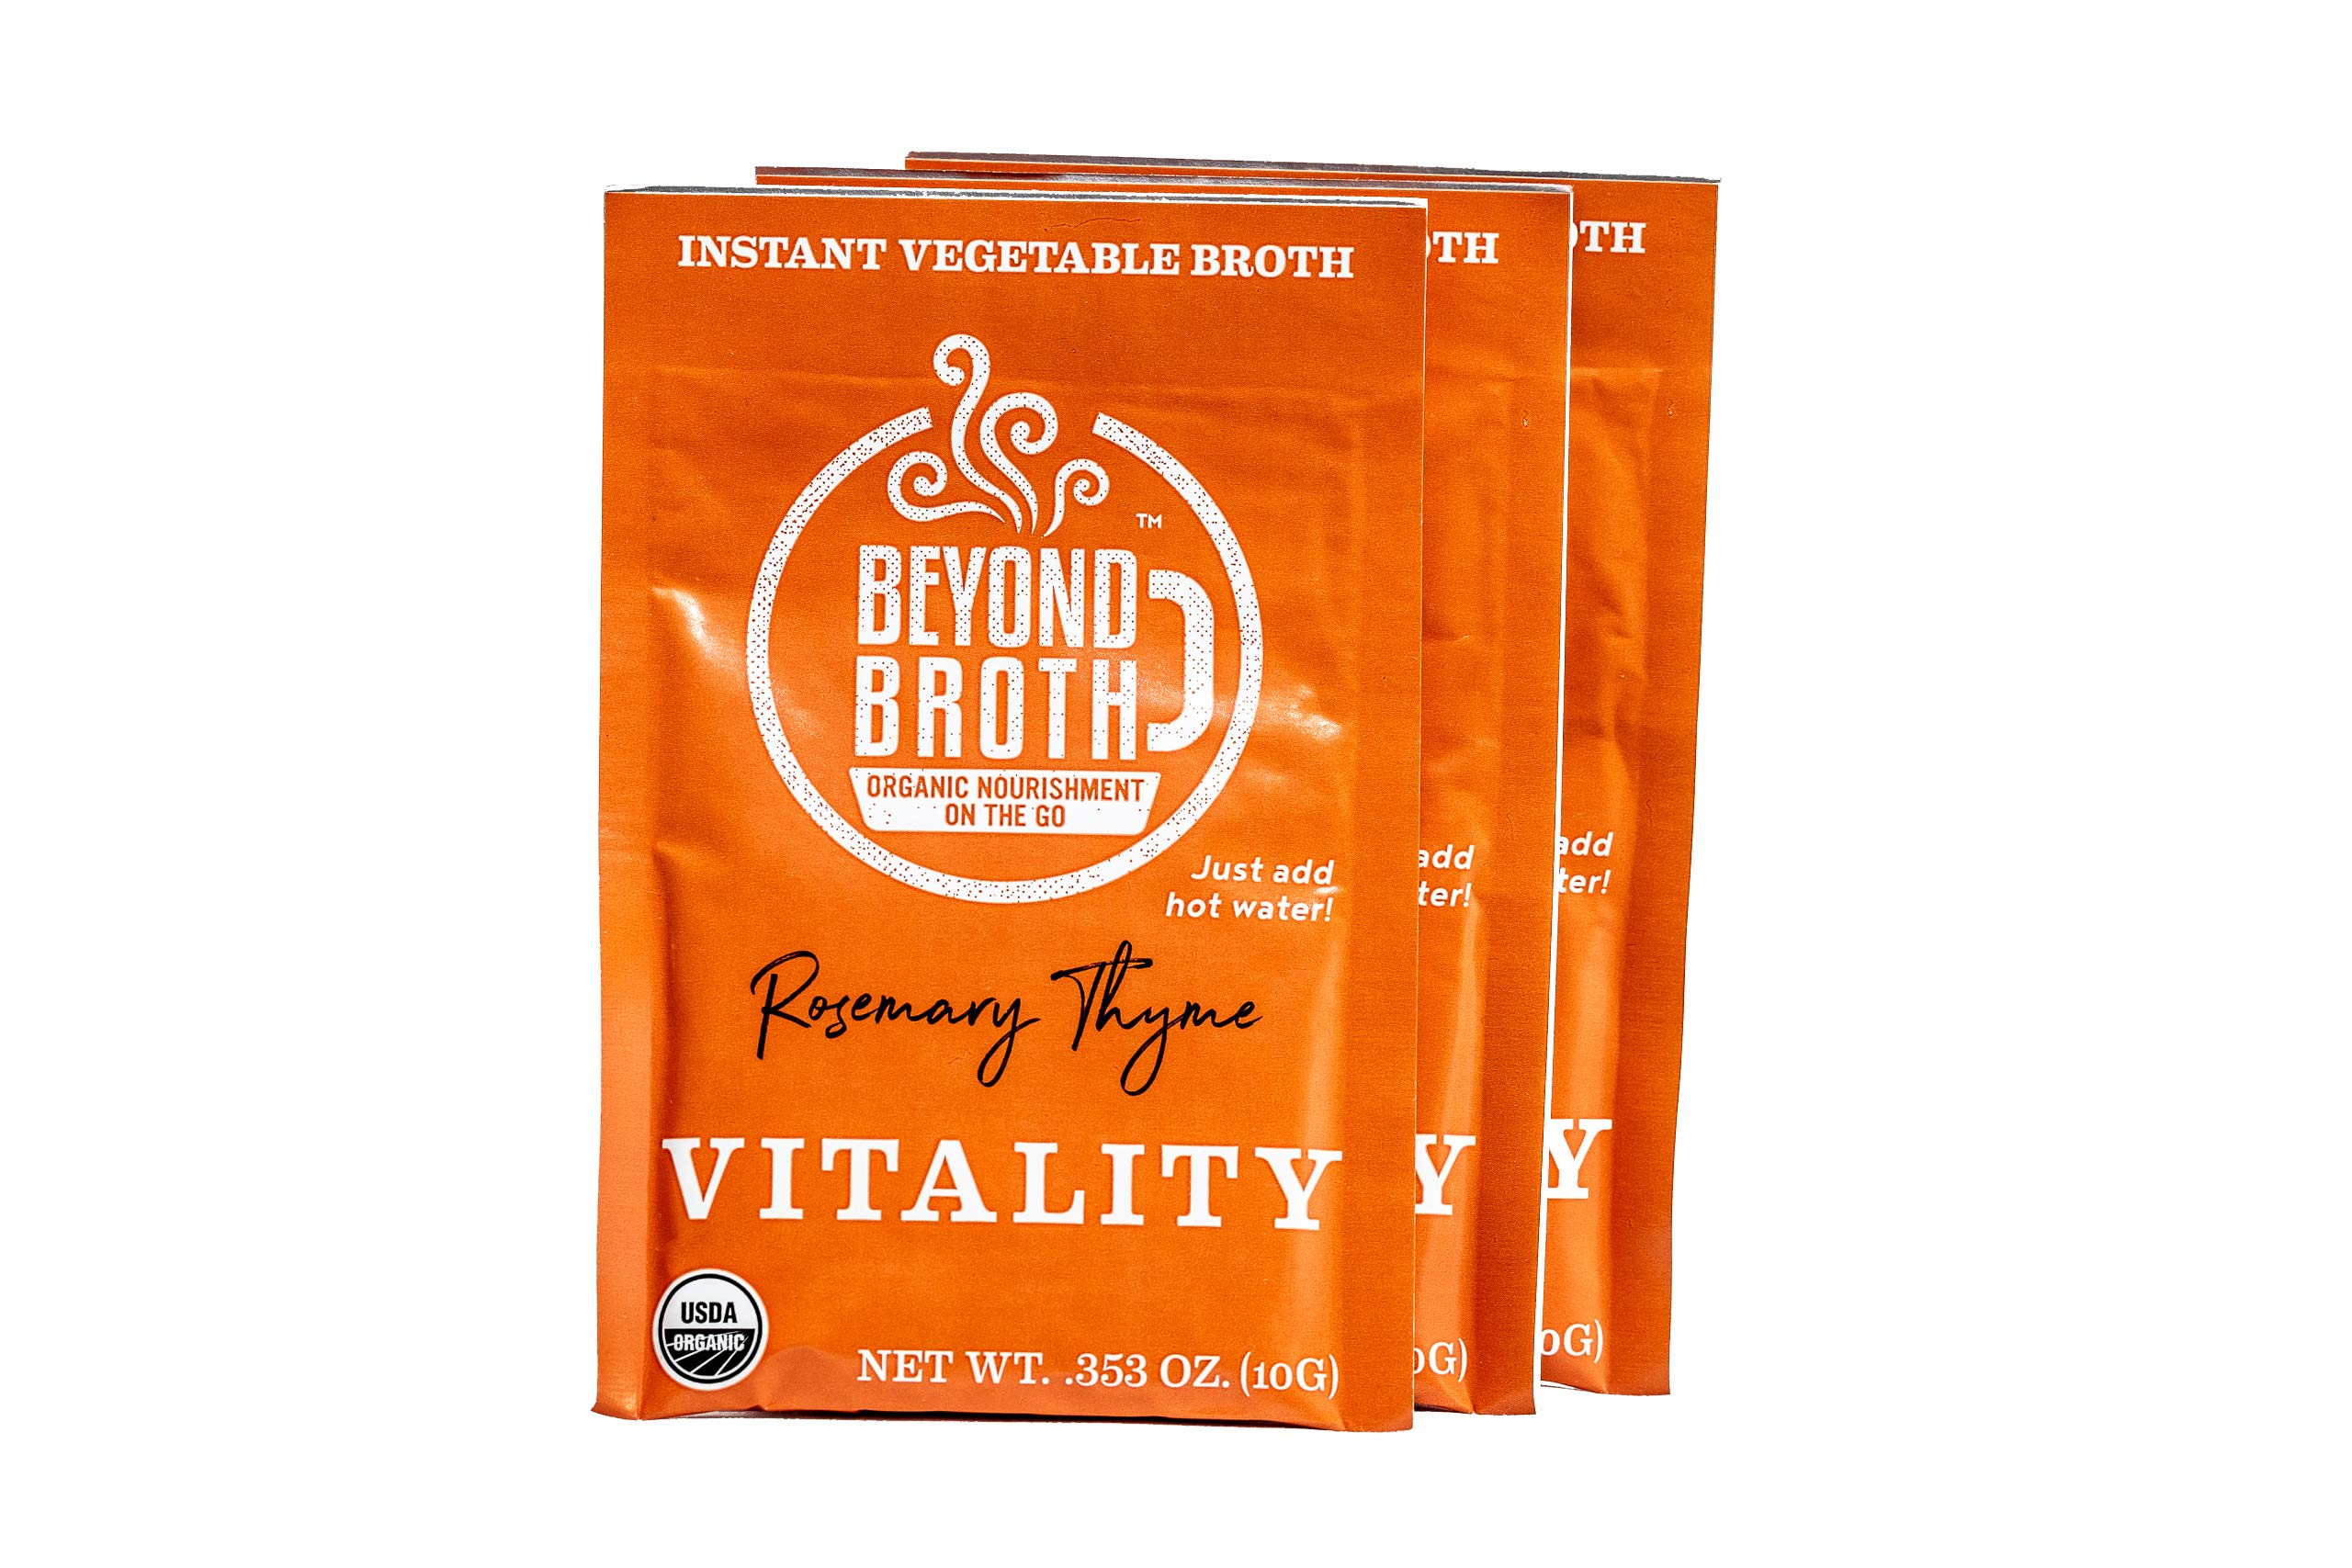 Beyond Broth Rosemary Thyme Vitality Organic Vegan Vegetable Instant Sipping Broth; For On The Go Or Cooking Keto, Paleo and Whole30 3 single serve packets, Made in the USA